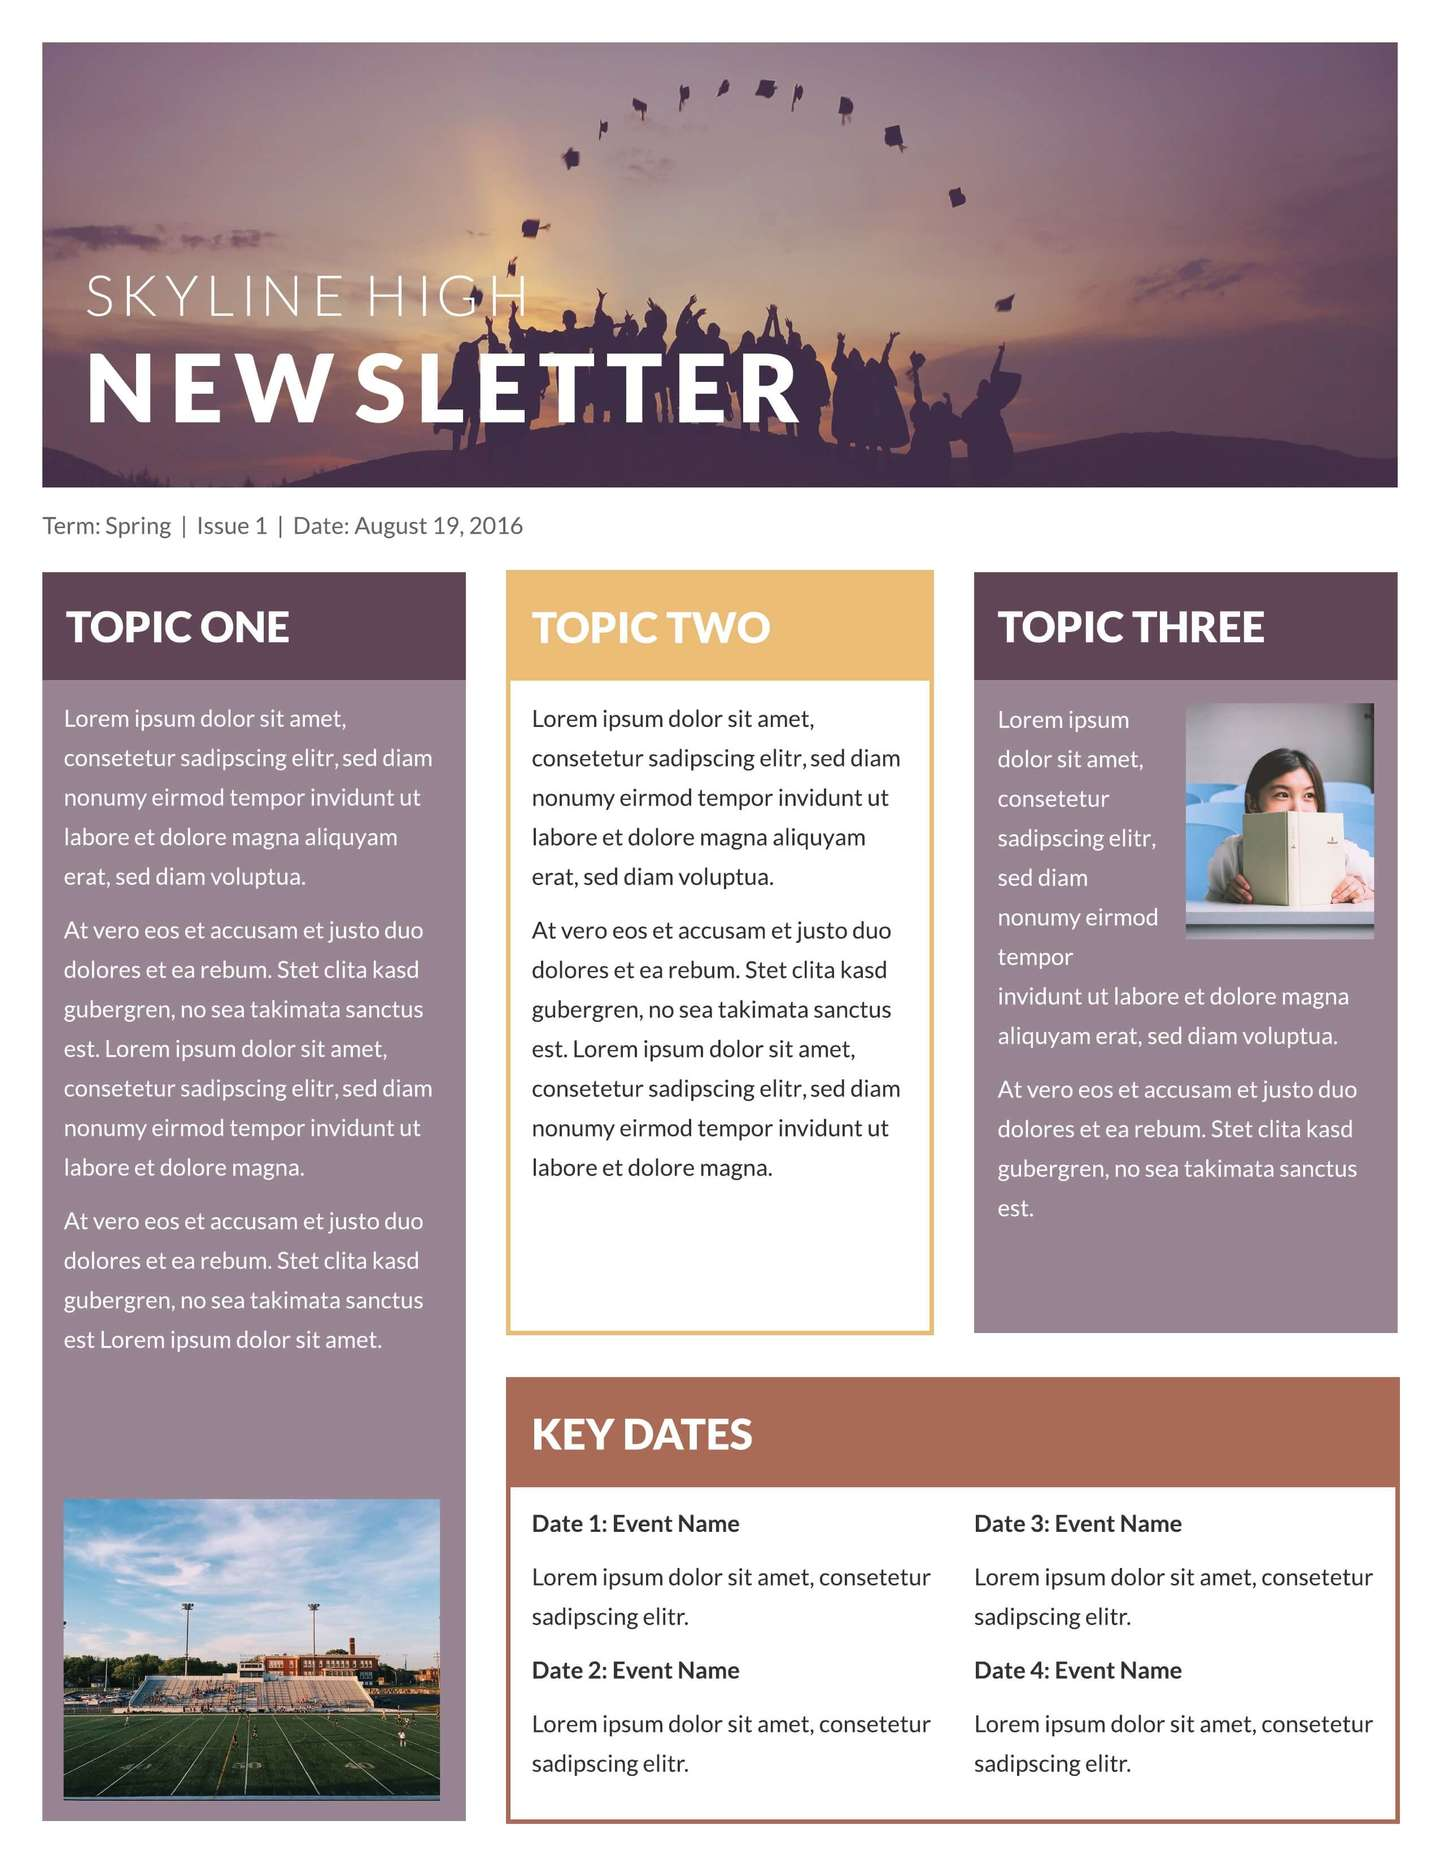 Free printable newsletter templates email newsletter examples skyline high classroom newsletter template accmission Image collections